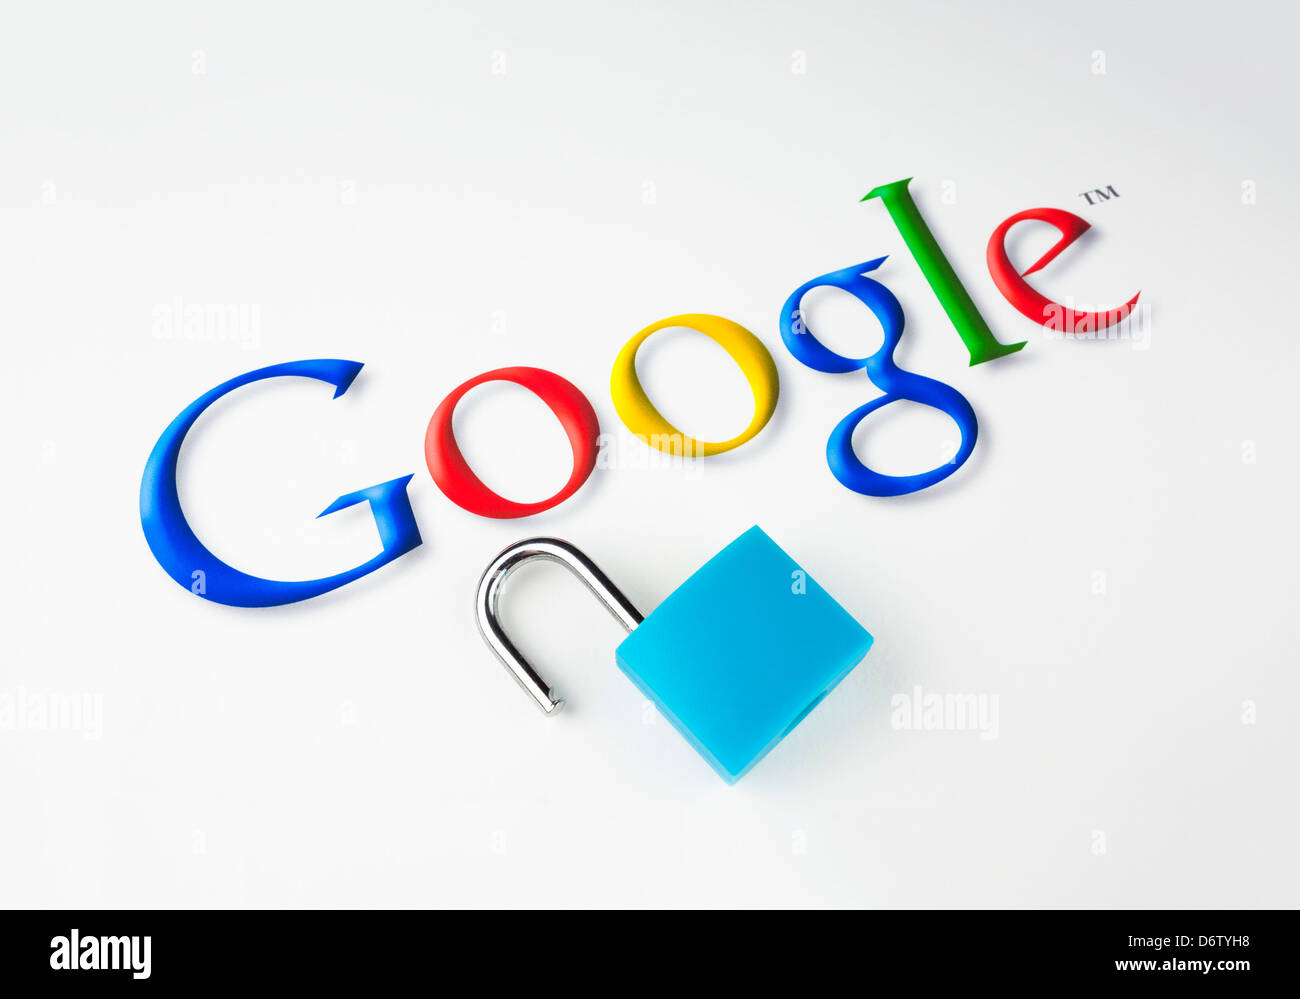 Google and data protection - Stock Image